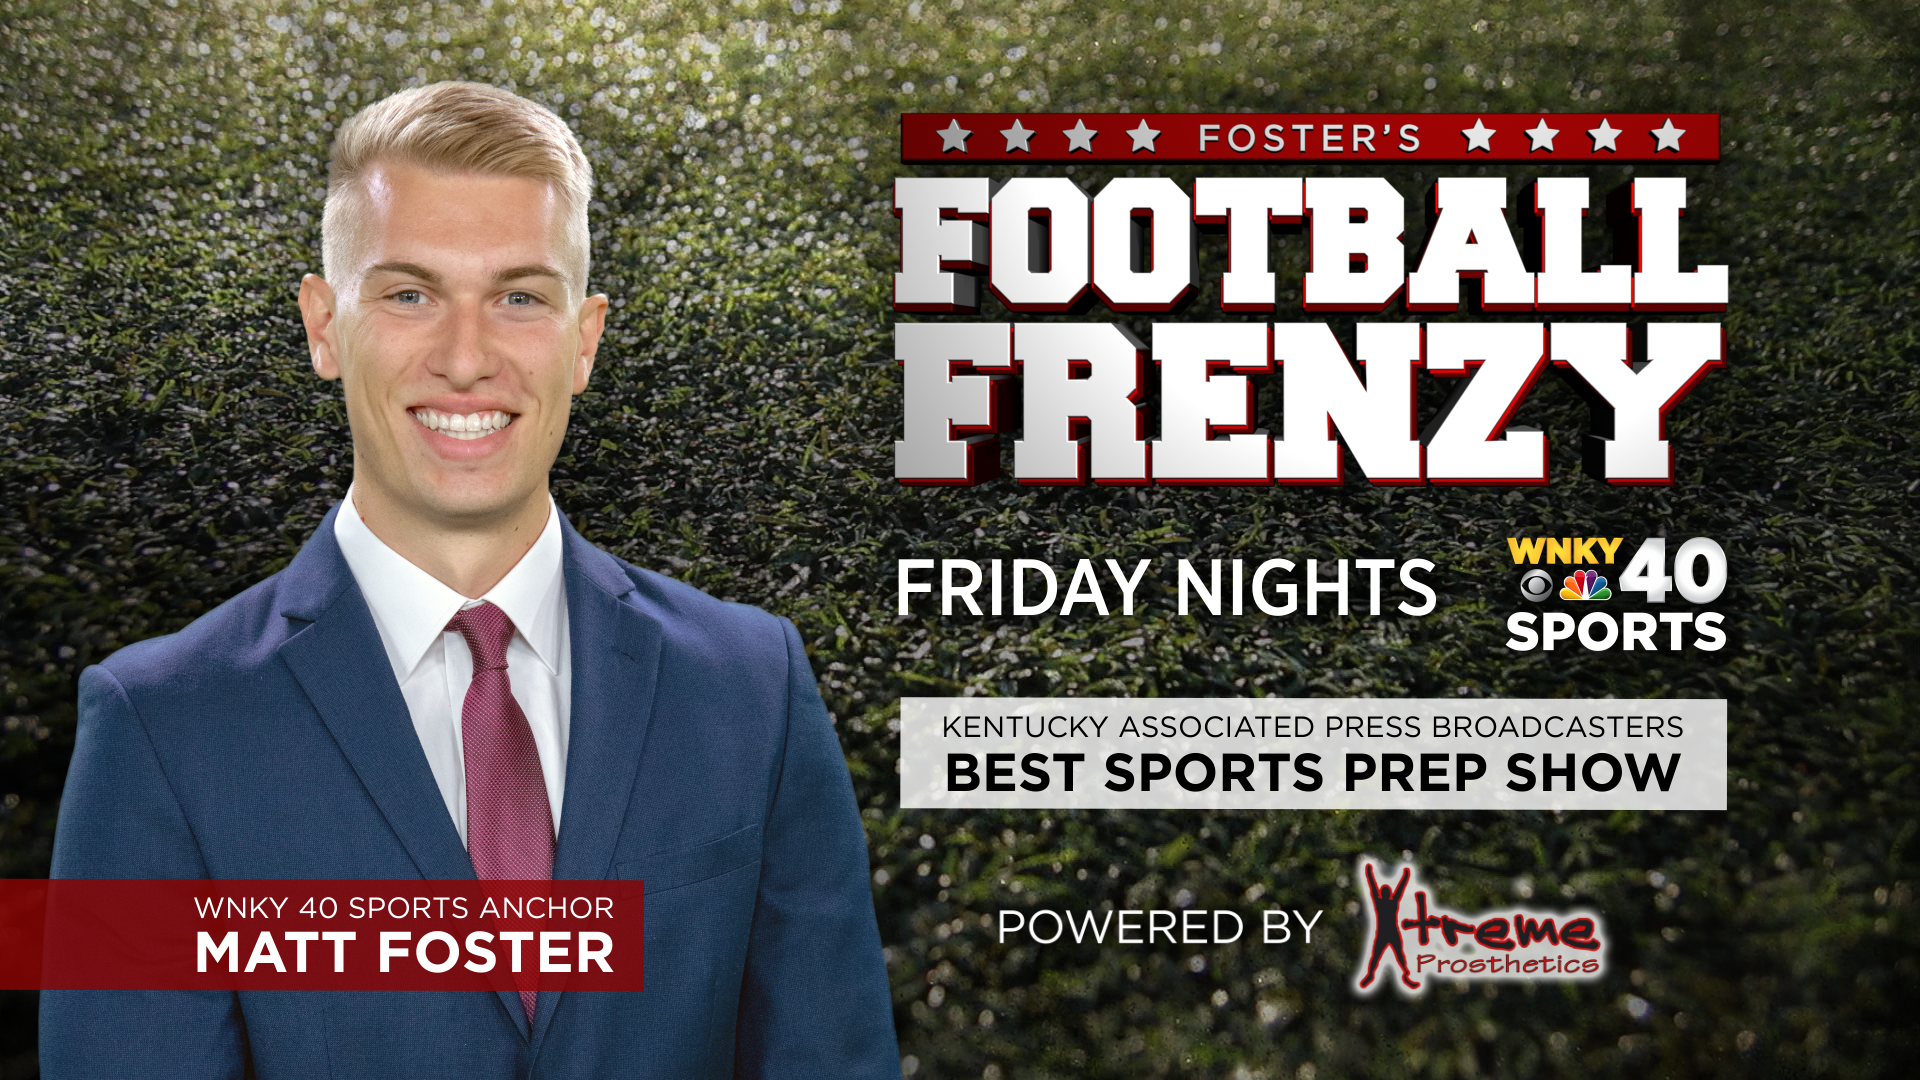 Fosters-Football-Frenzy-FGFX